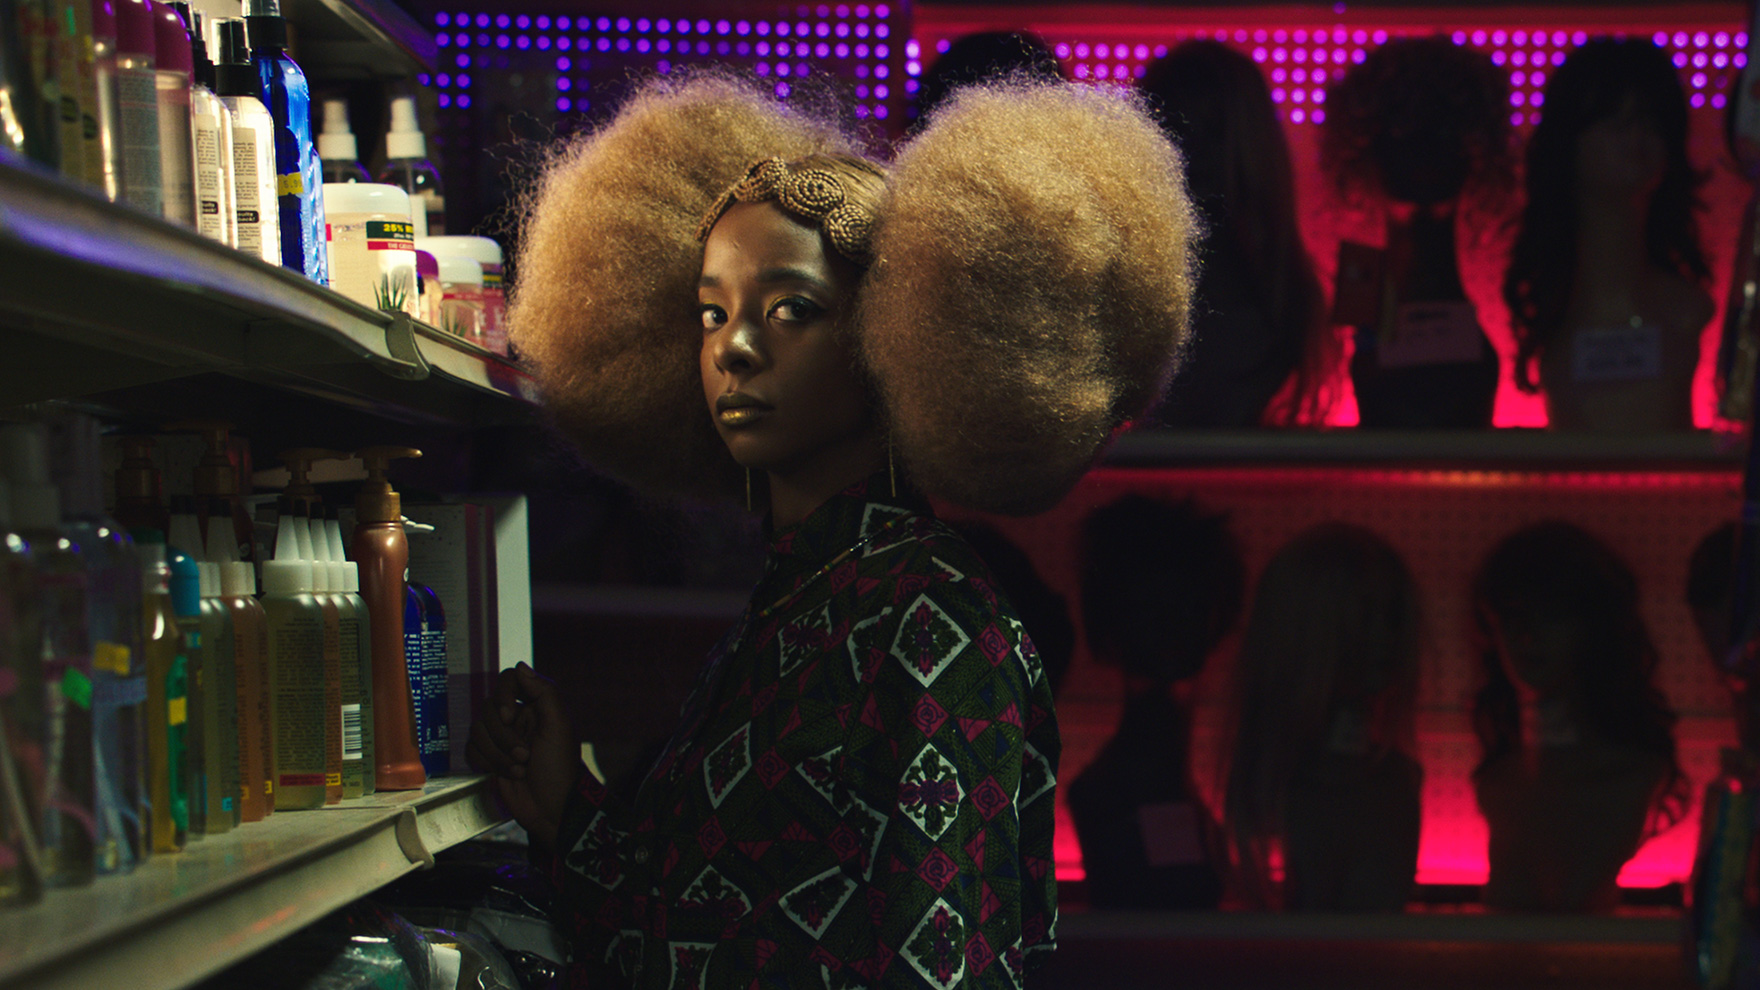 """A young woman (Kara Young) suspects something sinister in her favorite Brooklyn hair salon in Mariama Diallo's horror satire """"Hair Wolf,"""" one of the films screening in the Sundance Short Film Tour 2018. (Photo by Chalotte Hornsby, courtesy Sundance Institute)"""